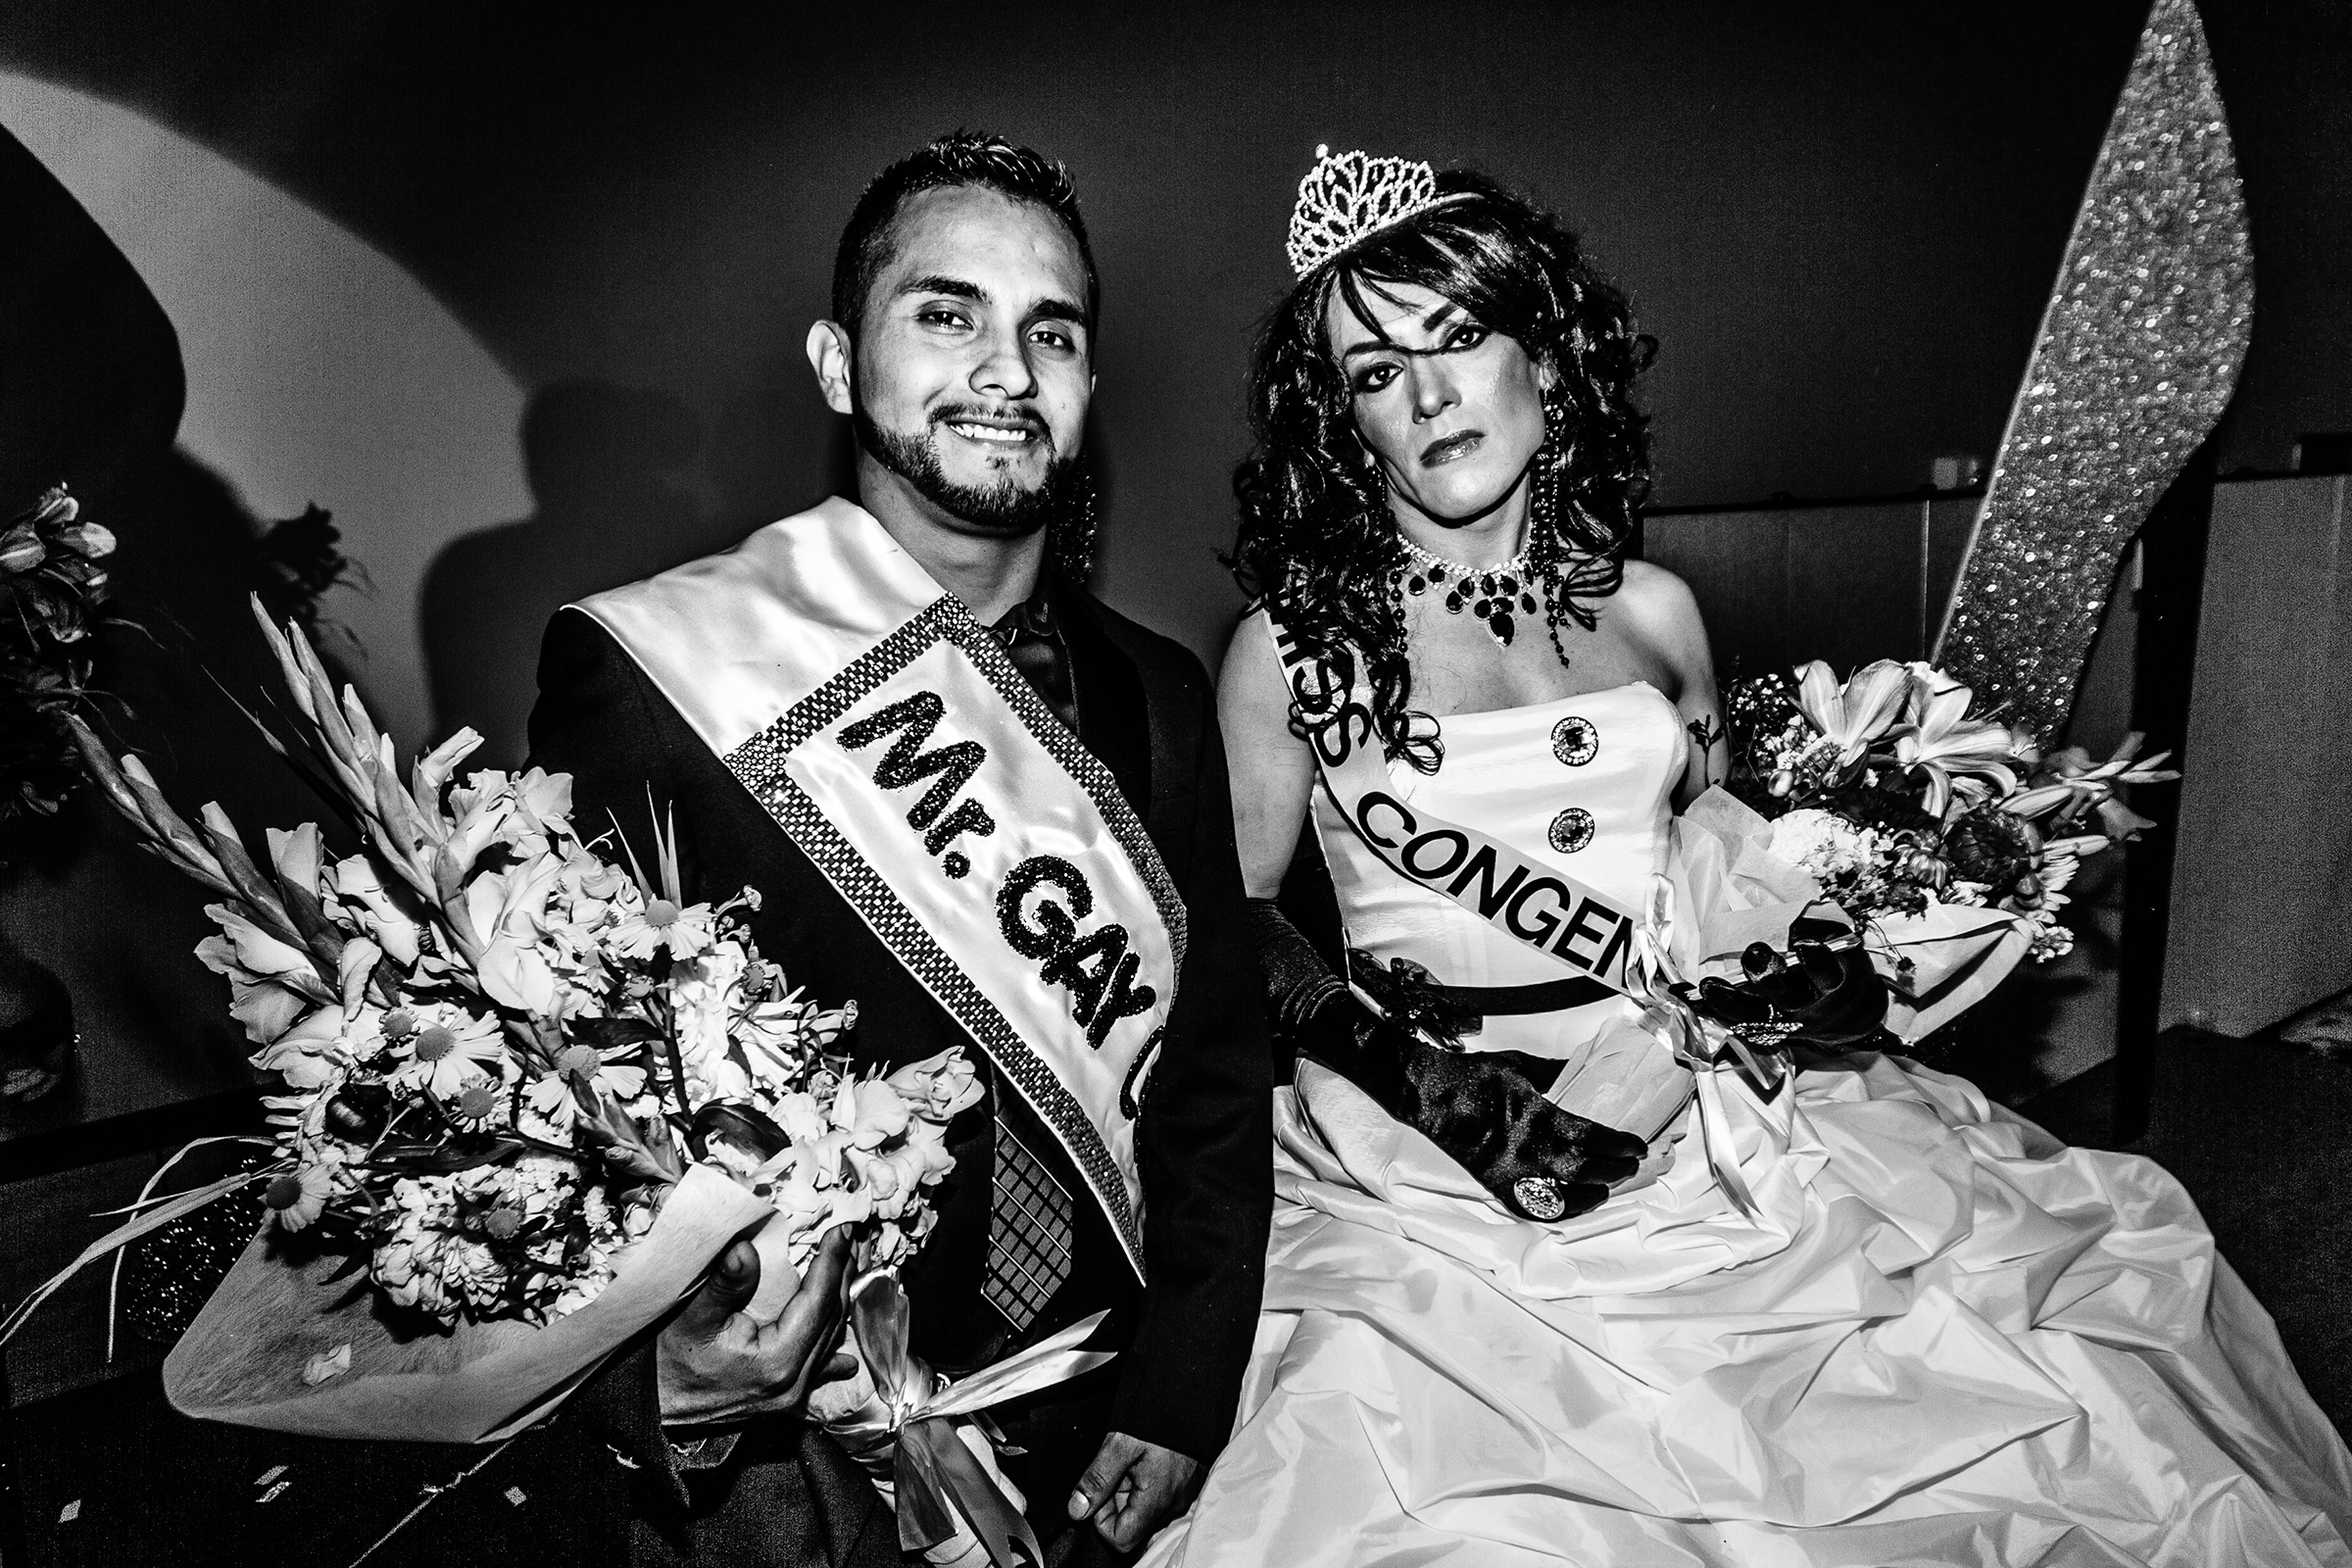 Mr. Gay Latino and Miss Congeniality at Entre Hermanos' Latino Pageant at Seattle University on August 27th, 2011.